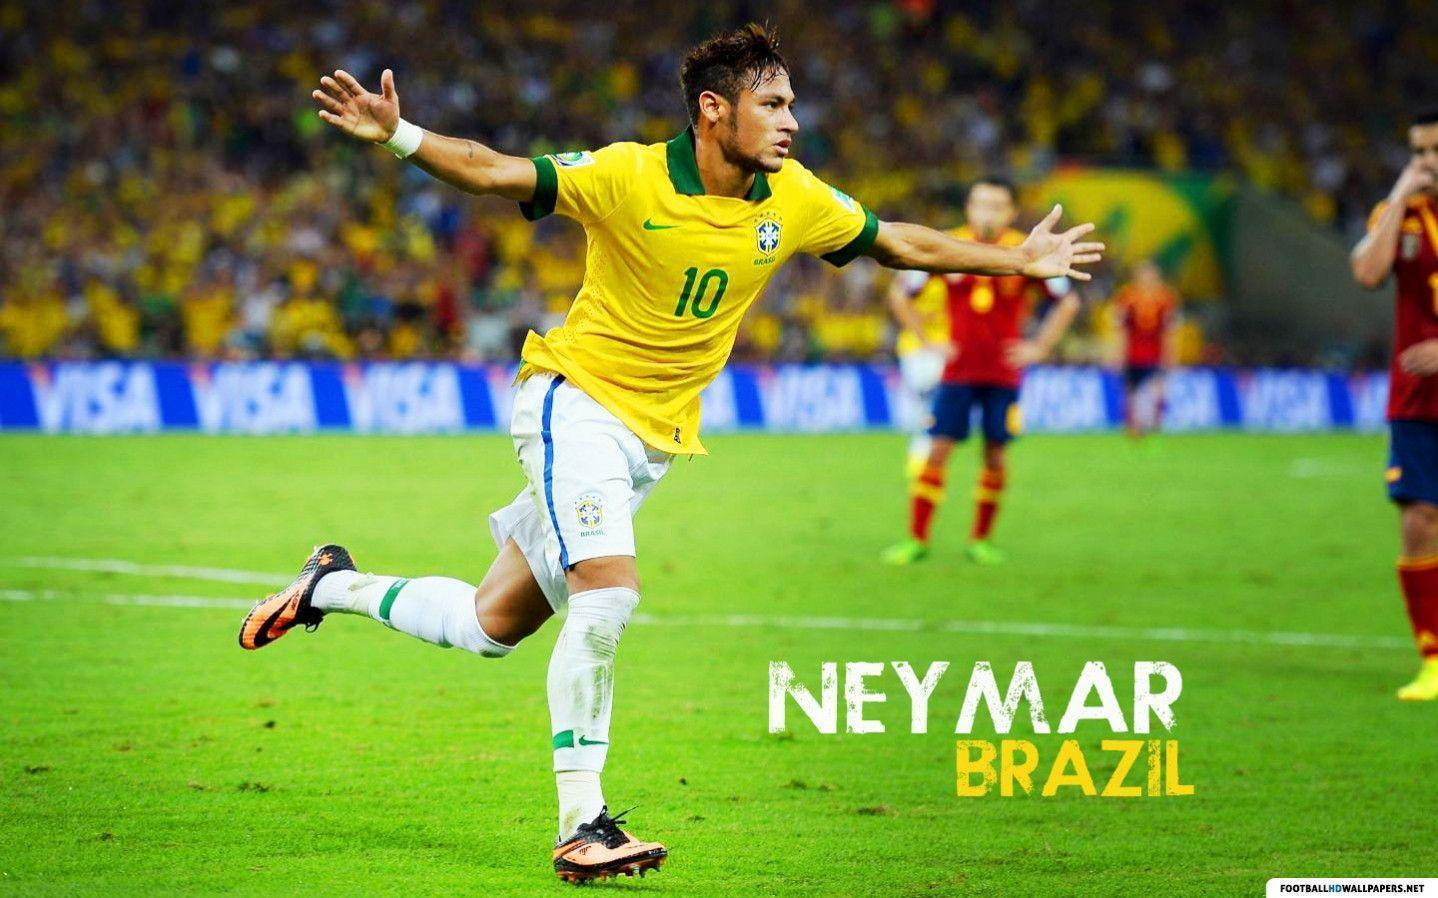 Neymar Brazil HD Wallpapers | WallpapersCharlie